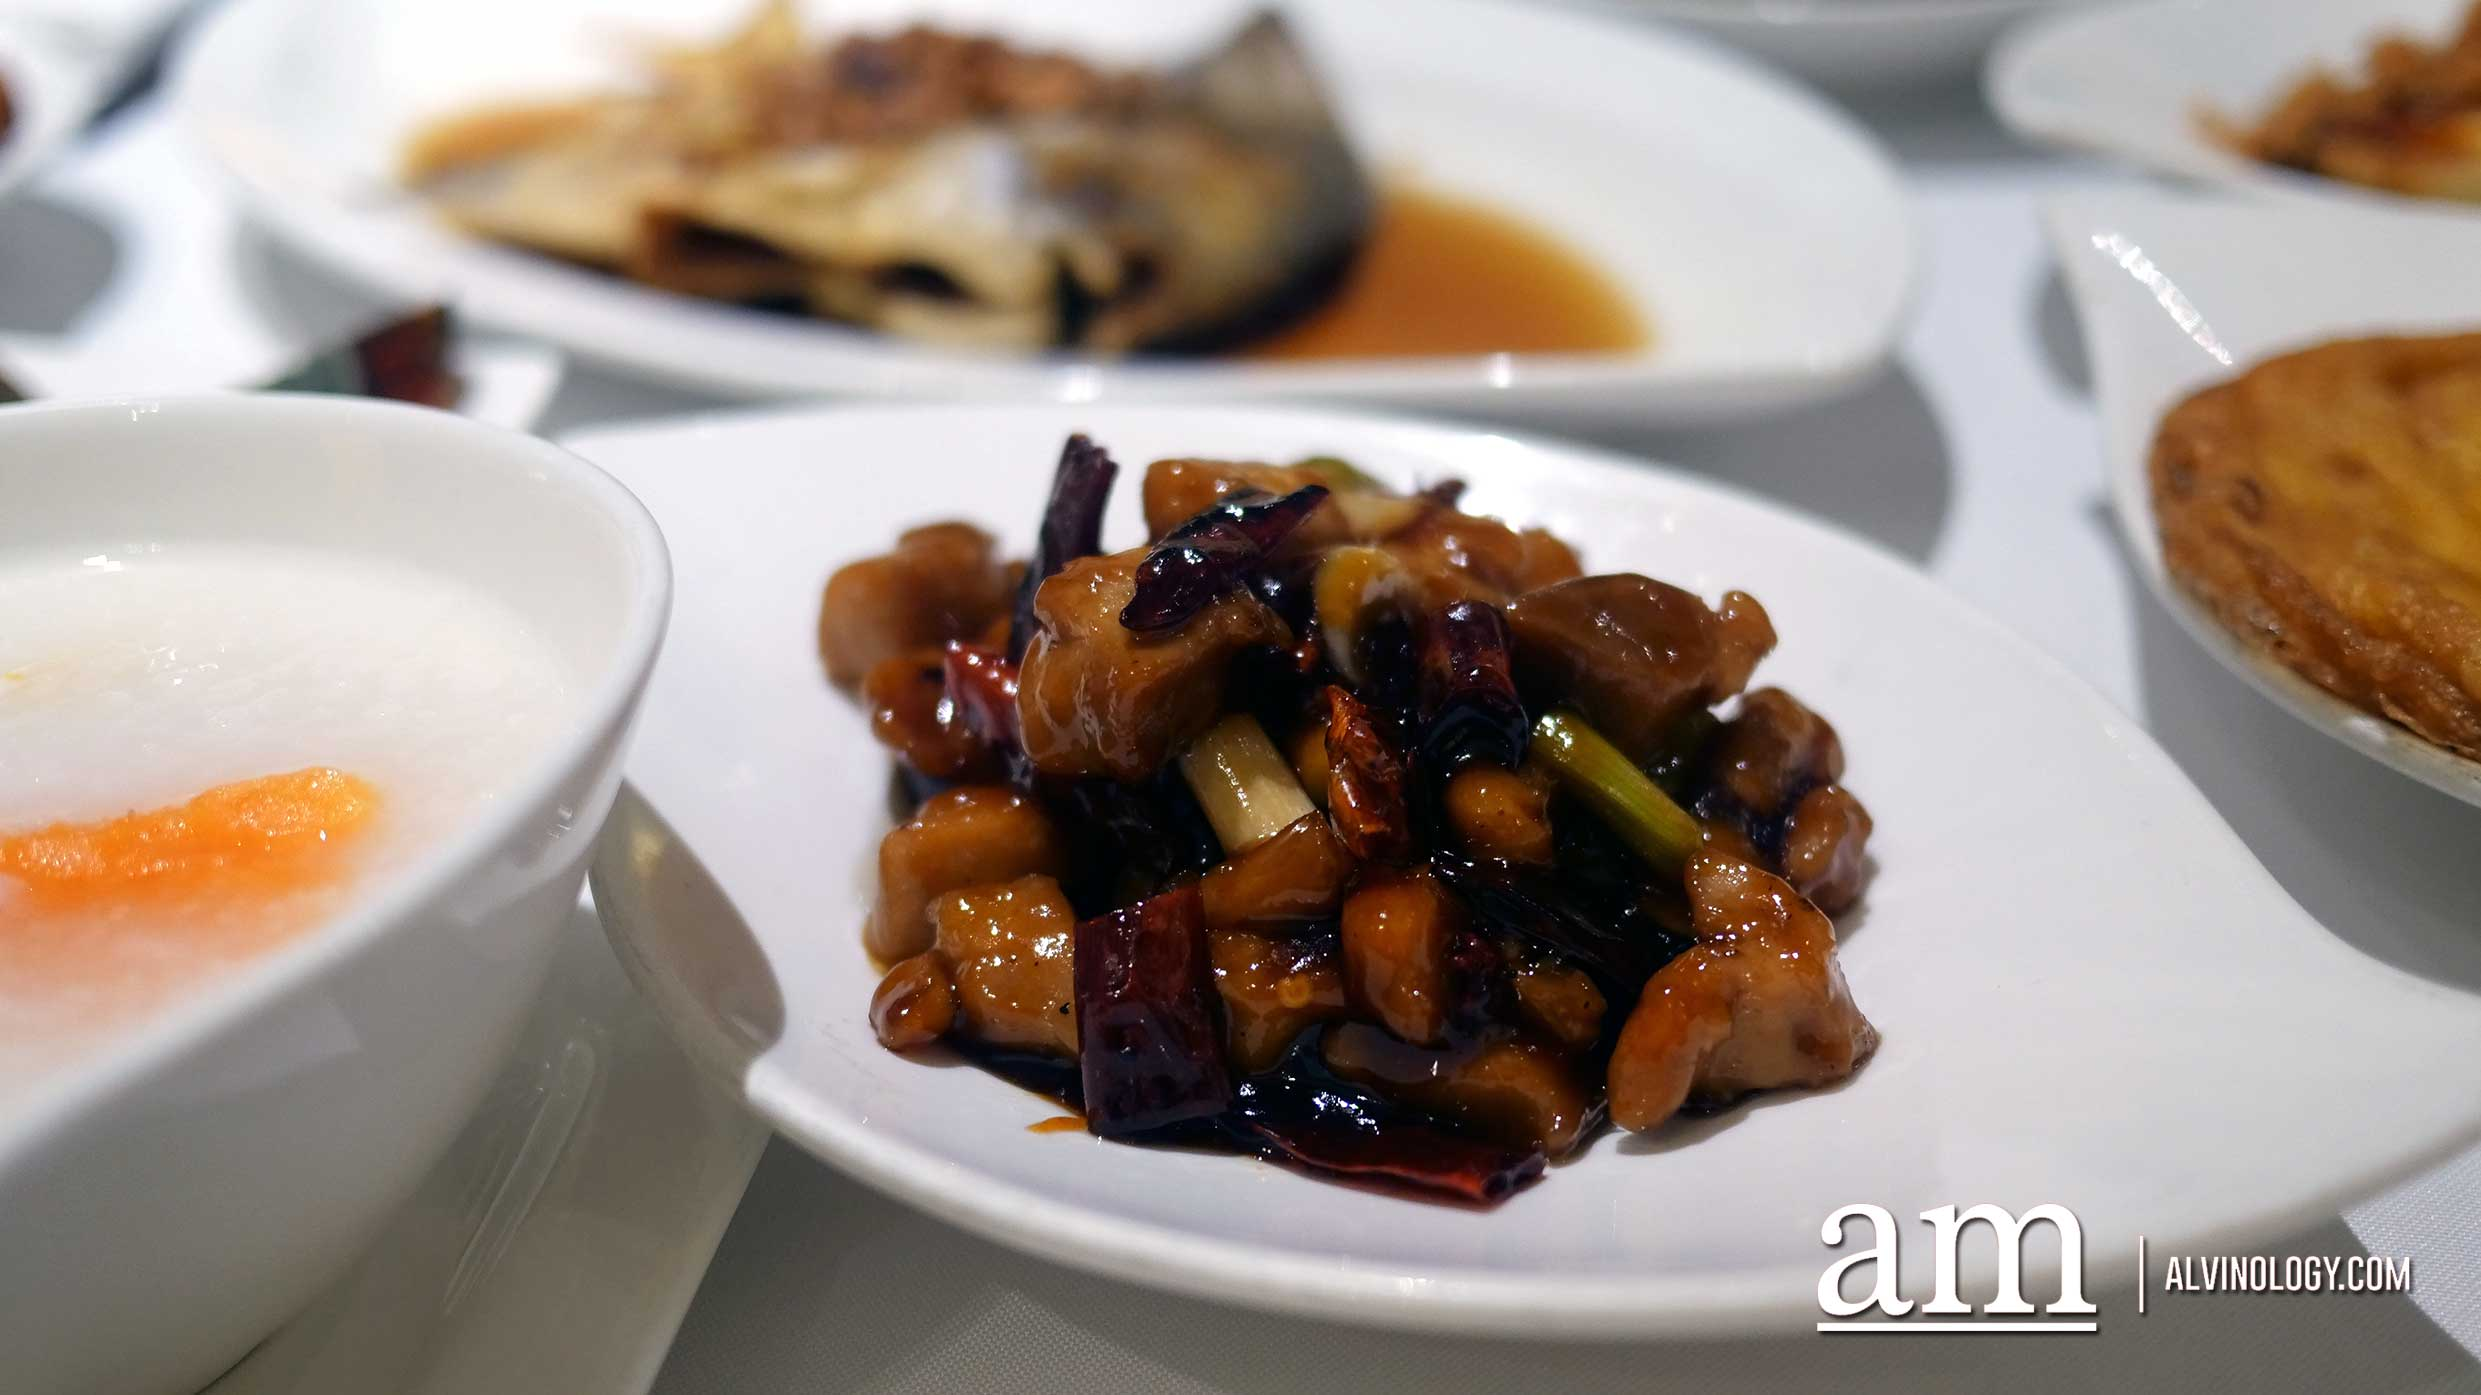 Sautéed Chicken with Dried Chilli 宫宝鸡丁 ($14++)